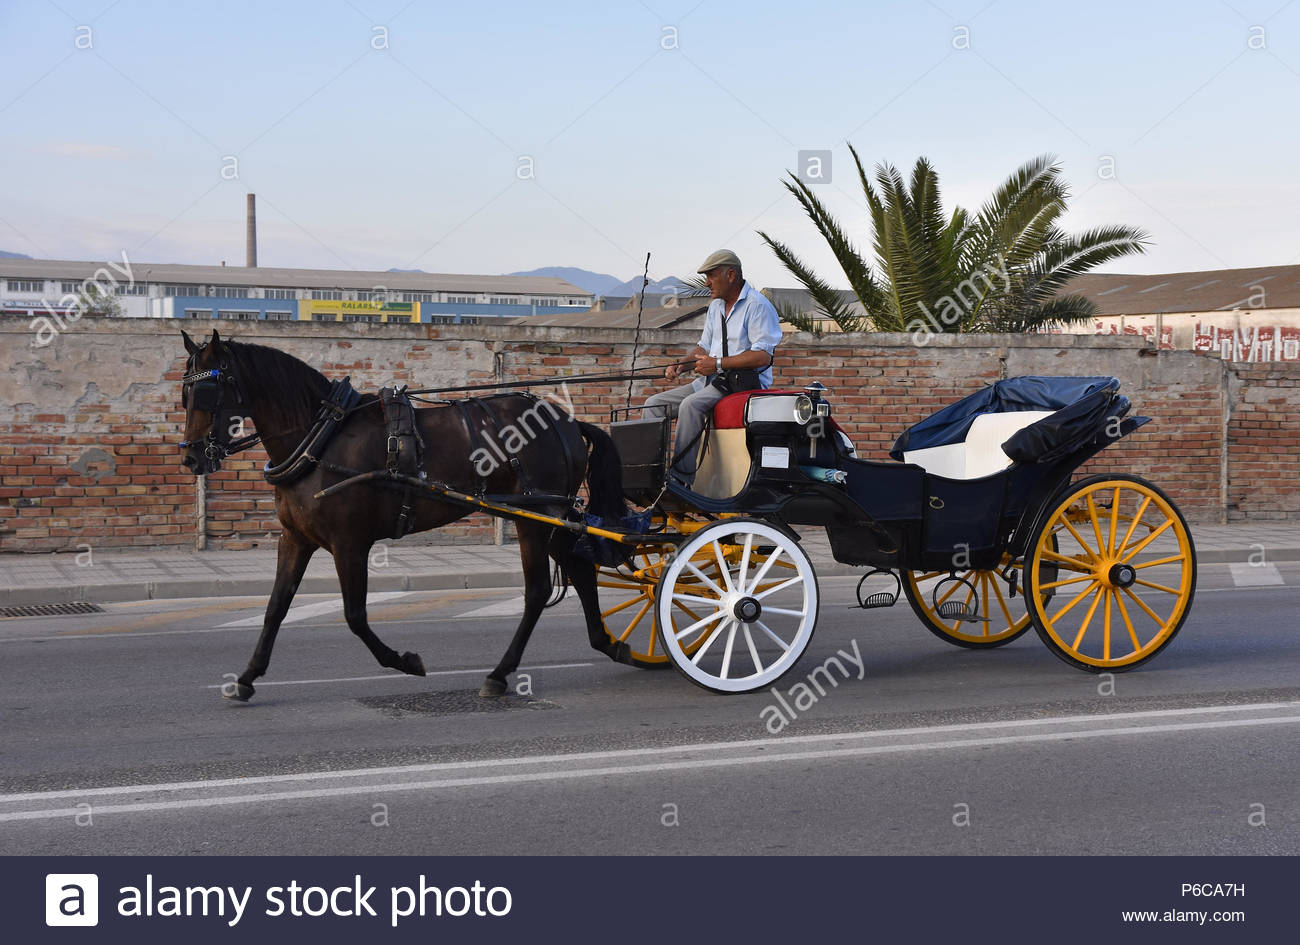 Man driving horse-drawn carriage on the road in Malaga Andalusia Southern Spain. Stock Photo